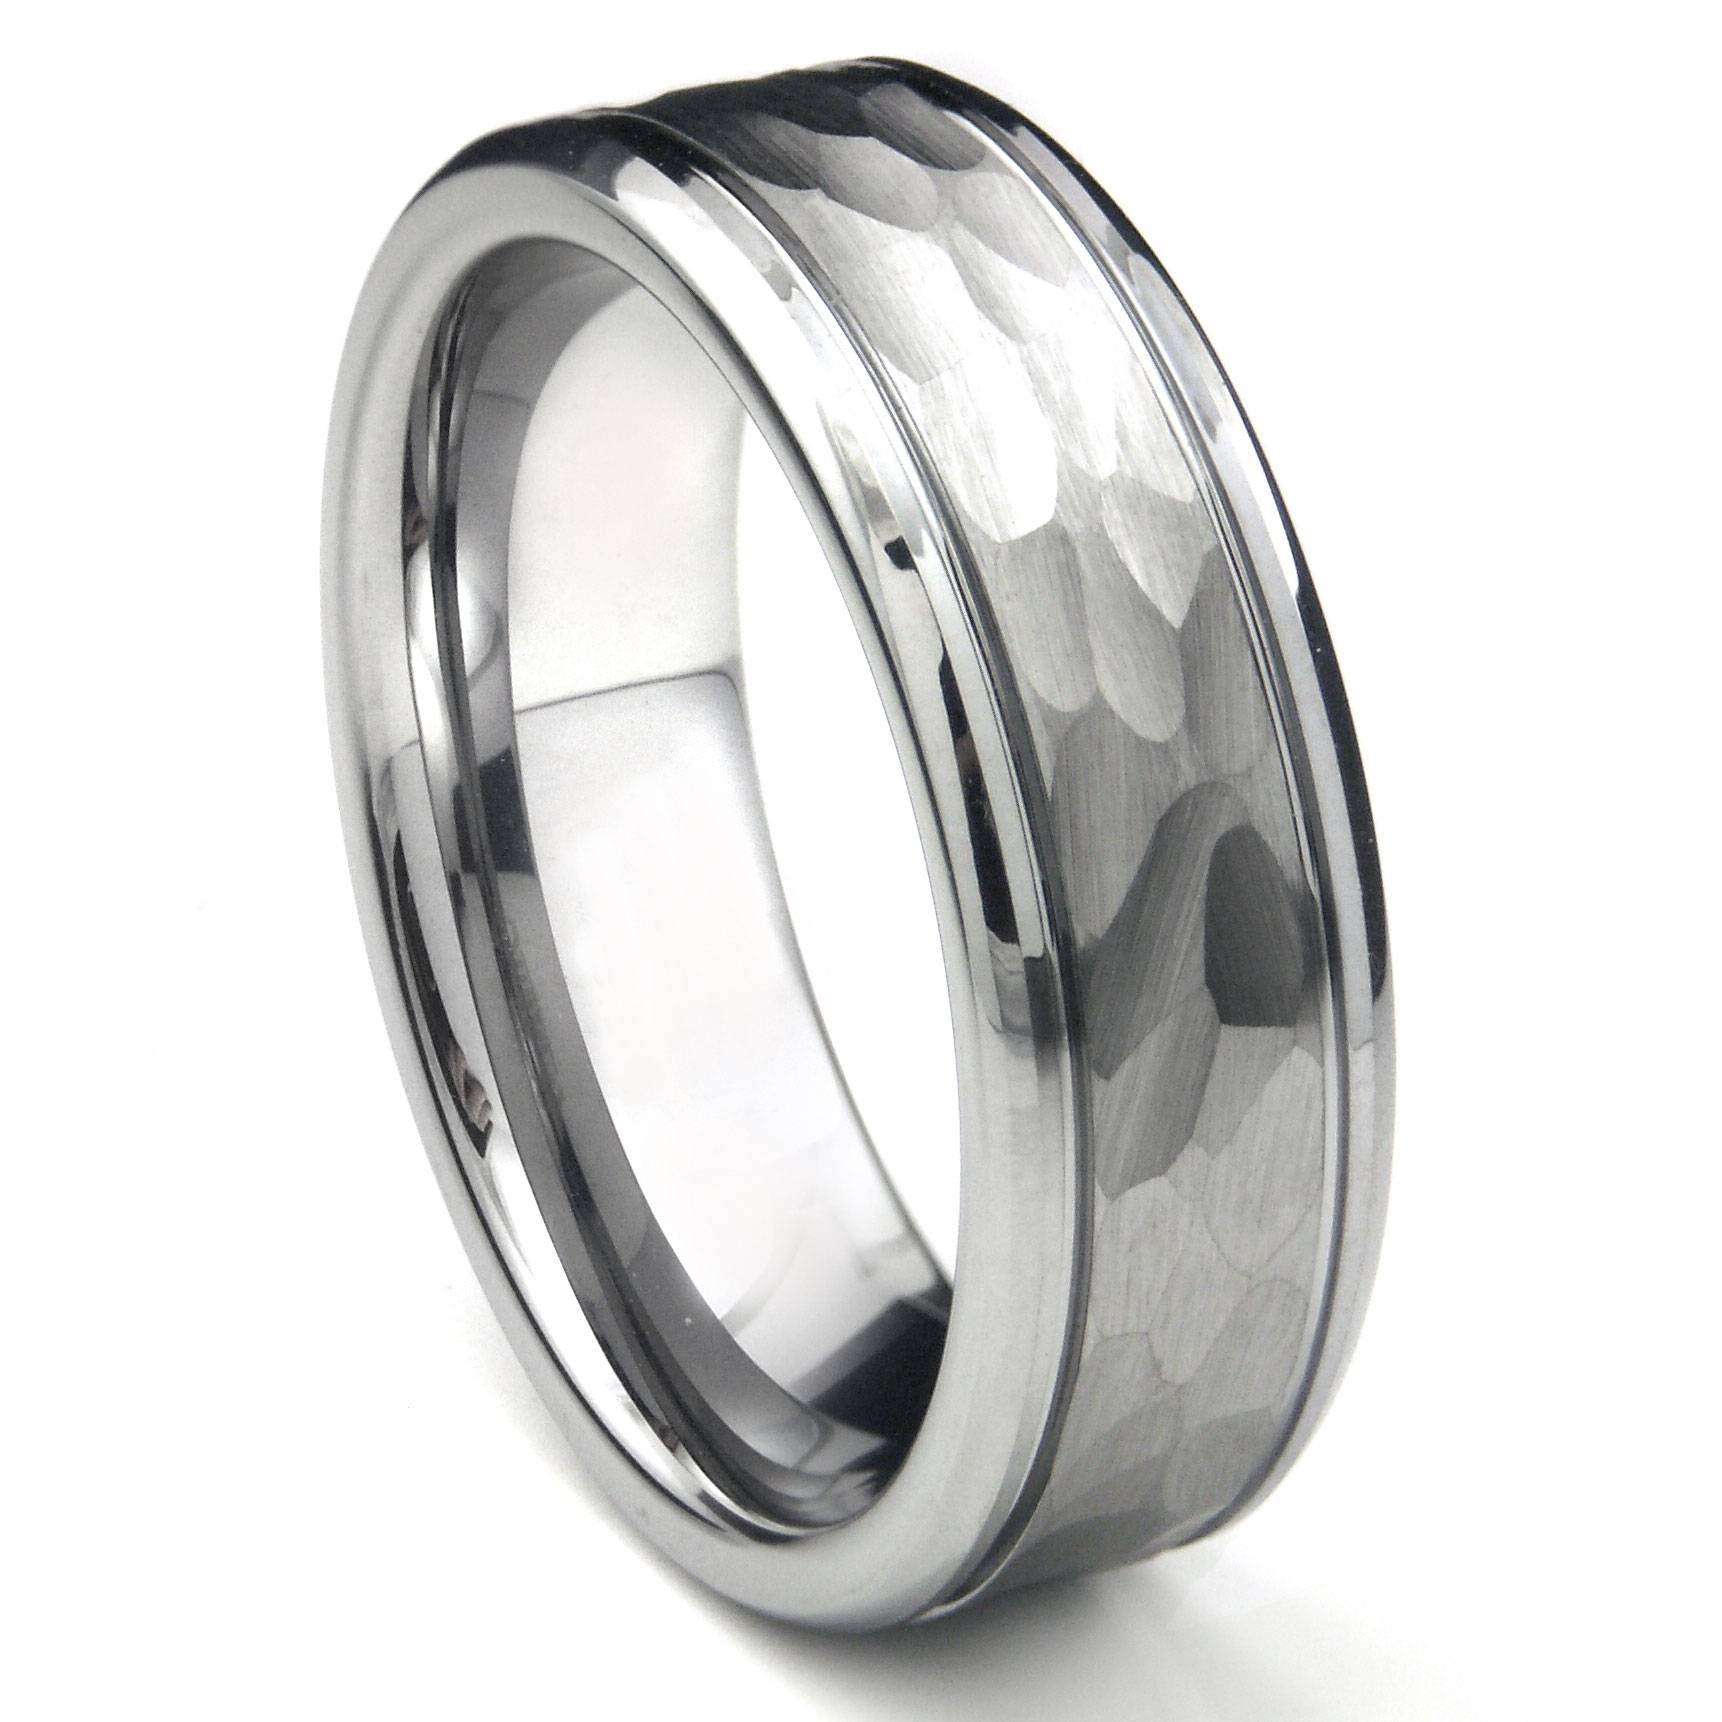 Tungsten Carbide Hammer Finish Wedding Band Ring /w Grooves Intended For Mens Hammered Wedding Bands (View 15 of 15)